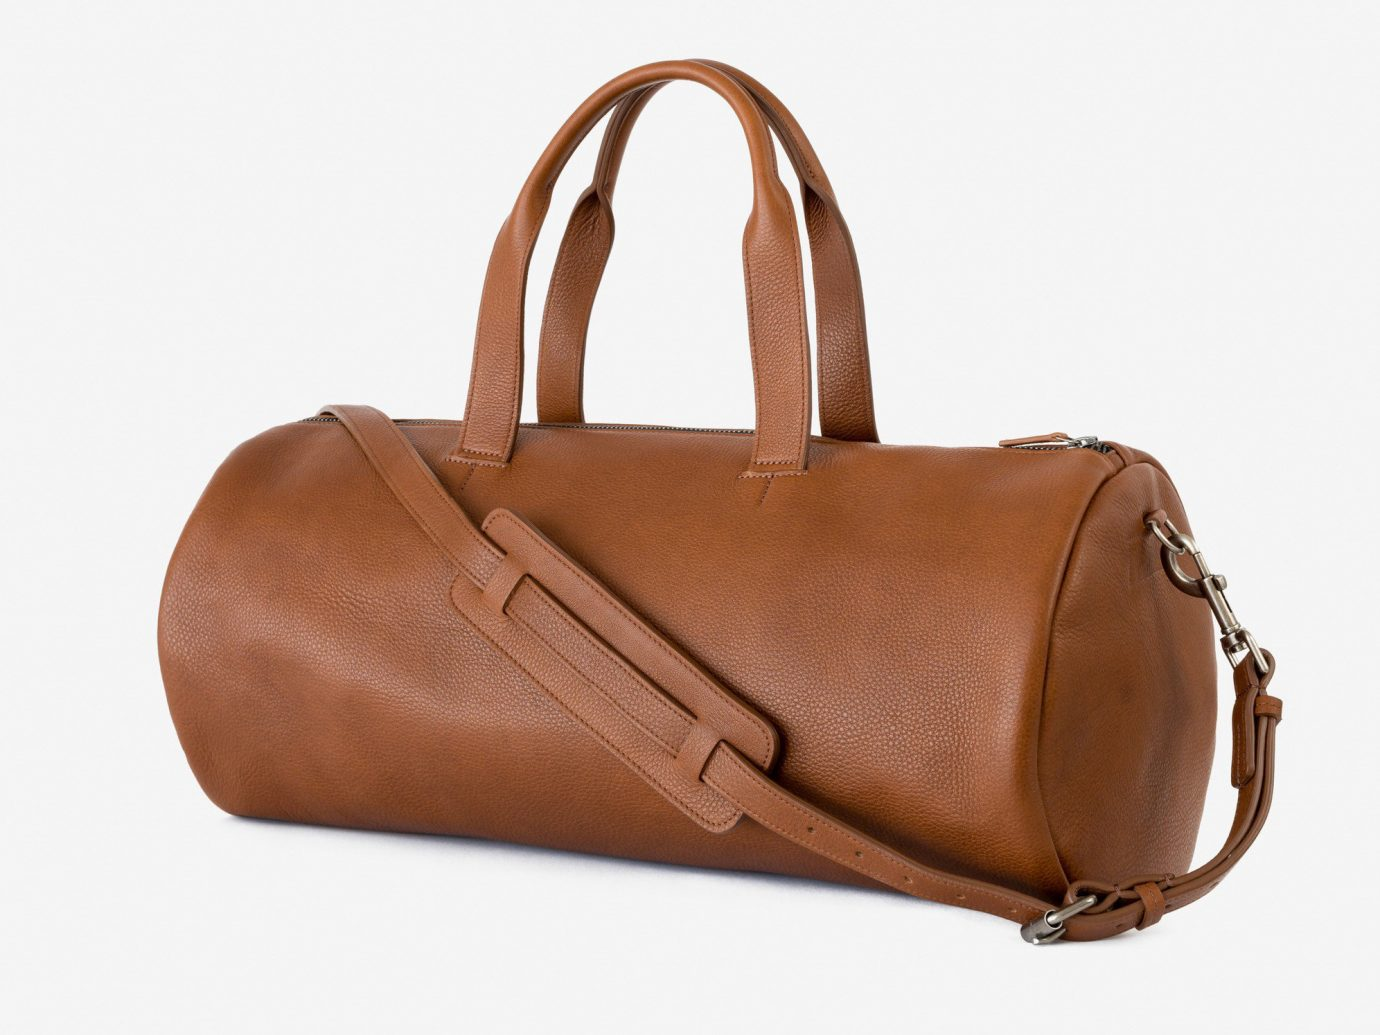 Style + Design accessory case bag leather brown luggage suitcase handbag piece fashion accessory shoulder bag caramel color product strap material peach metal product design hand luggage tan